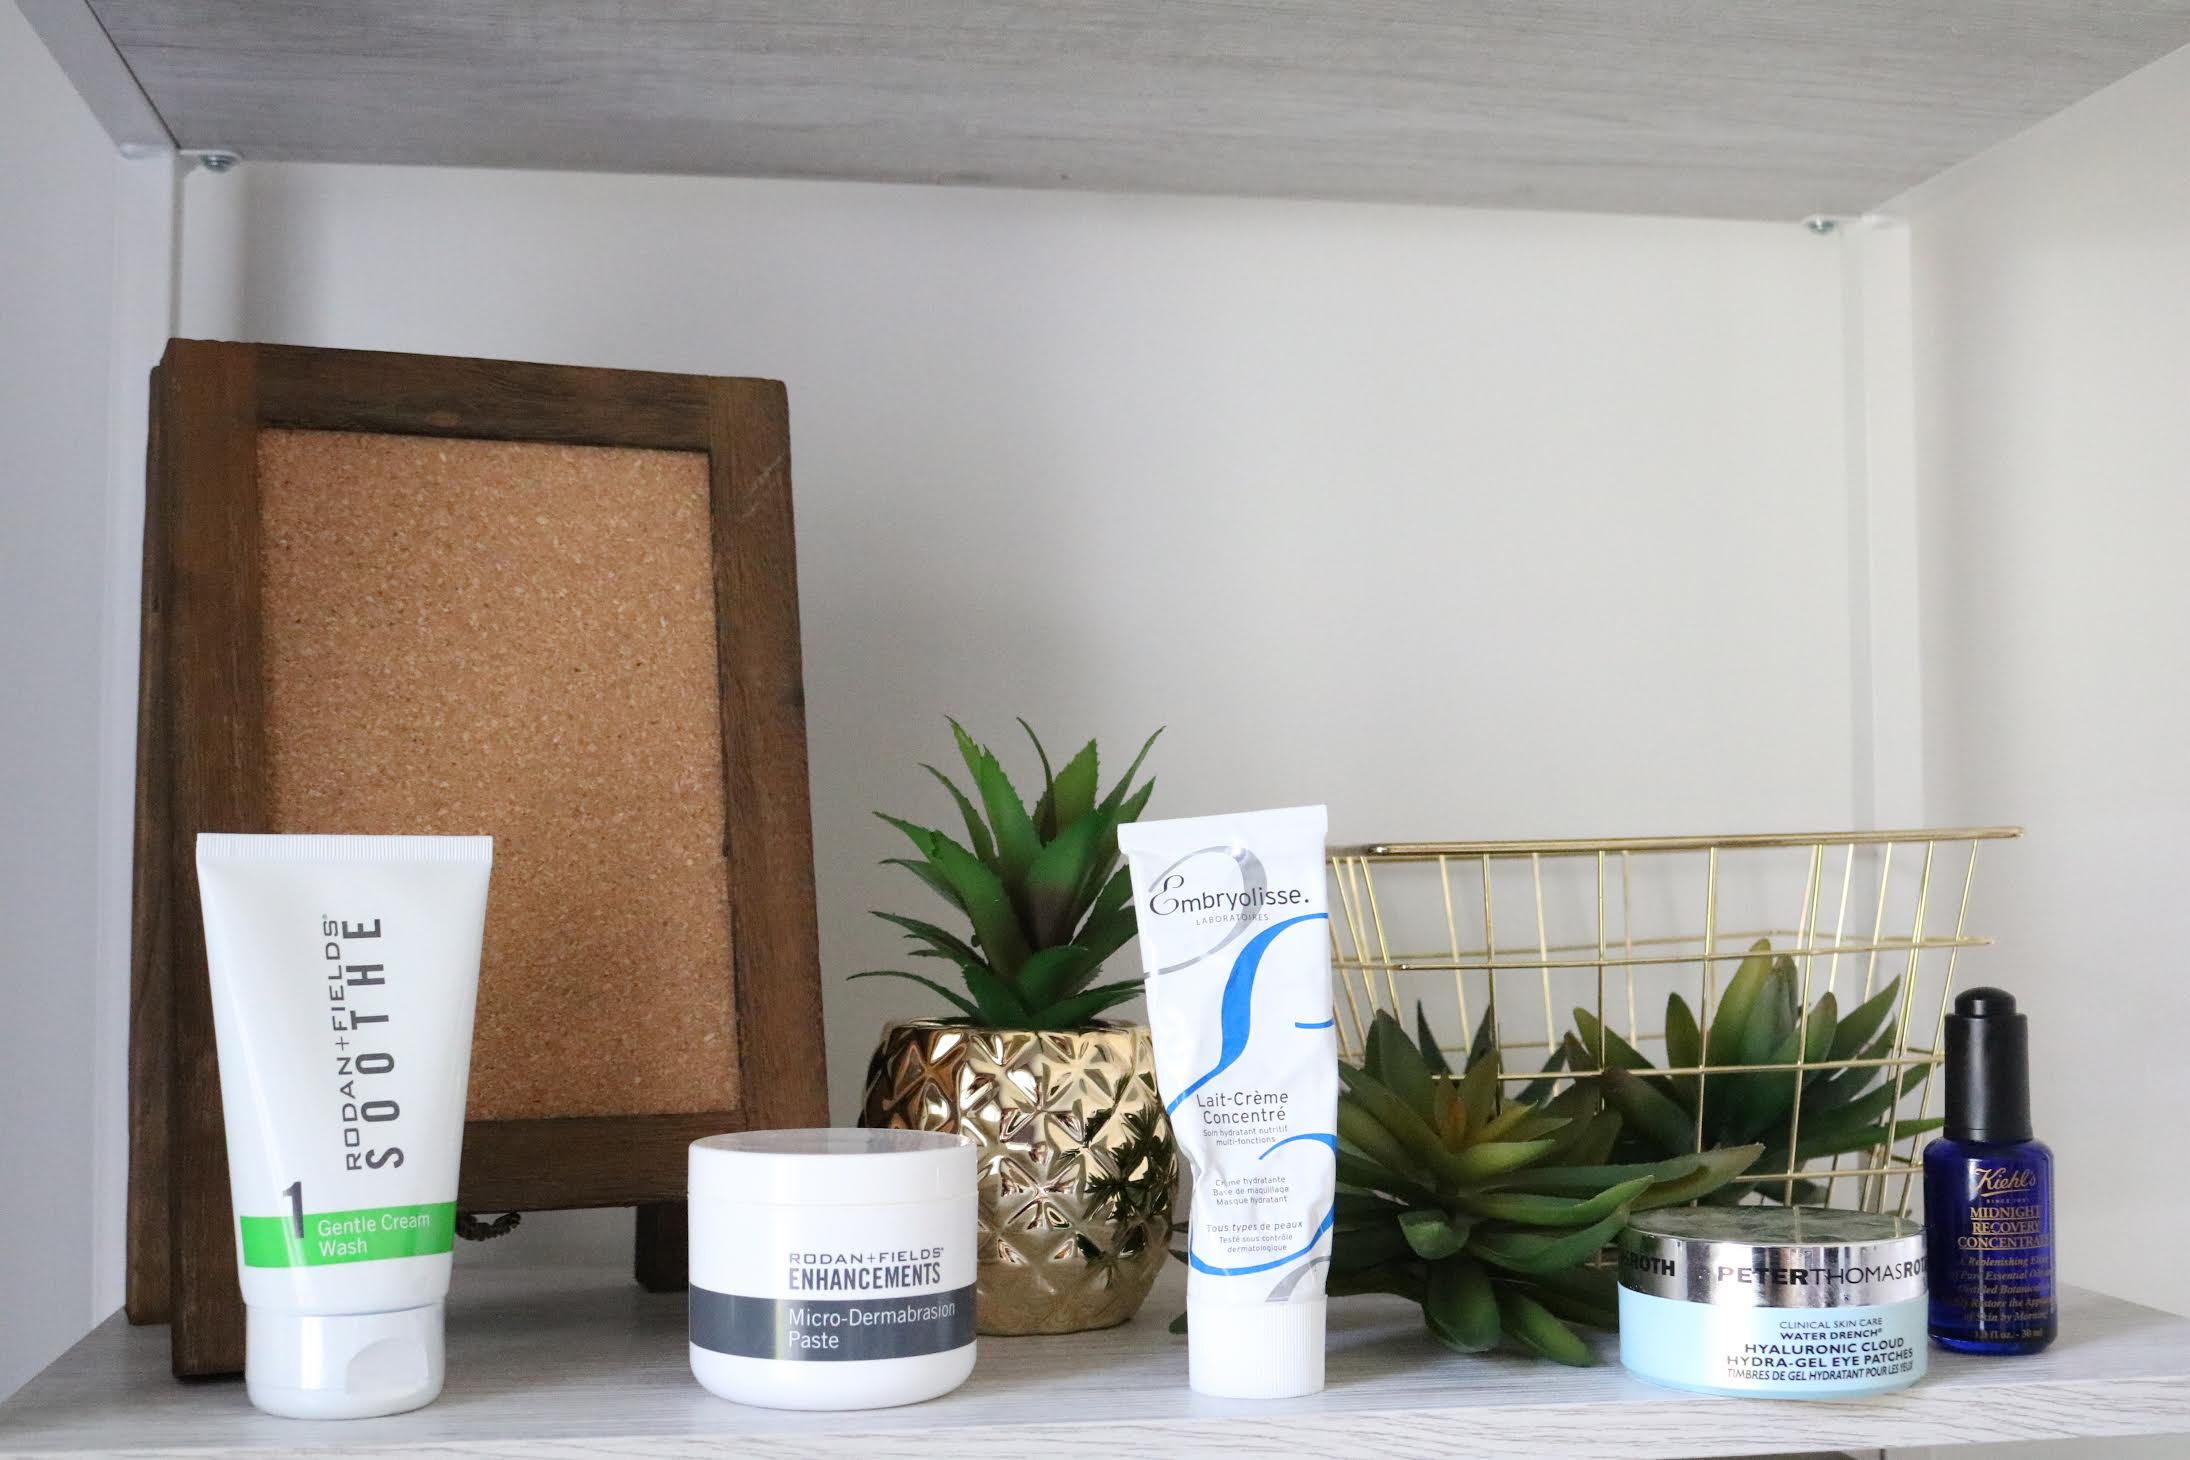 #SkinBabe Ashley Wottring shares a photo of some of her favorite skincare products!